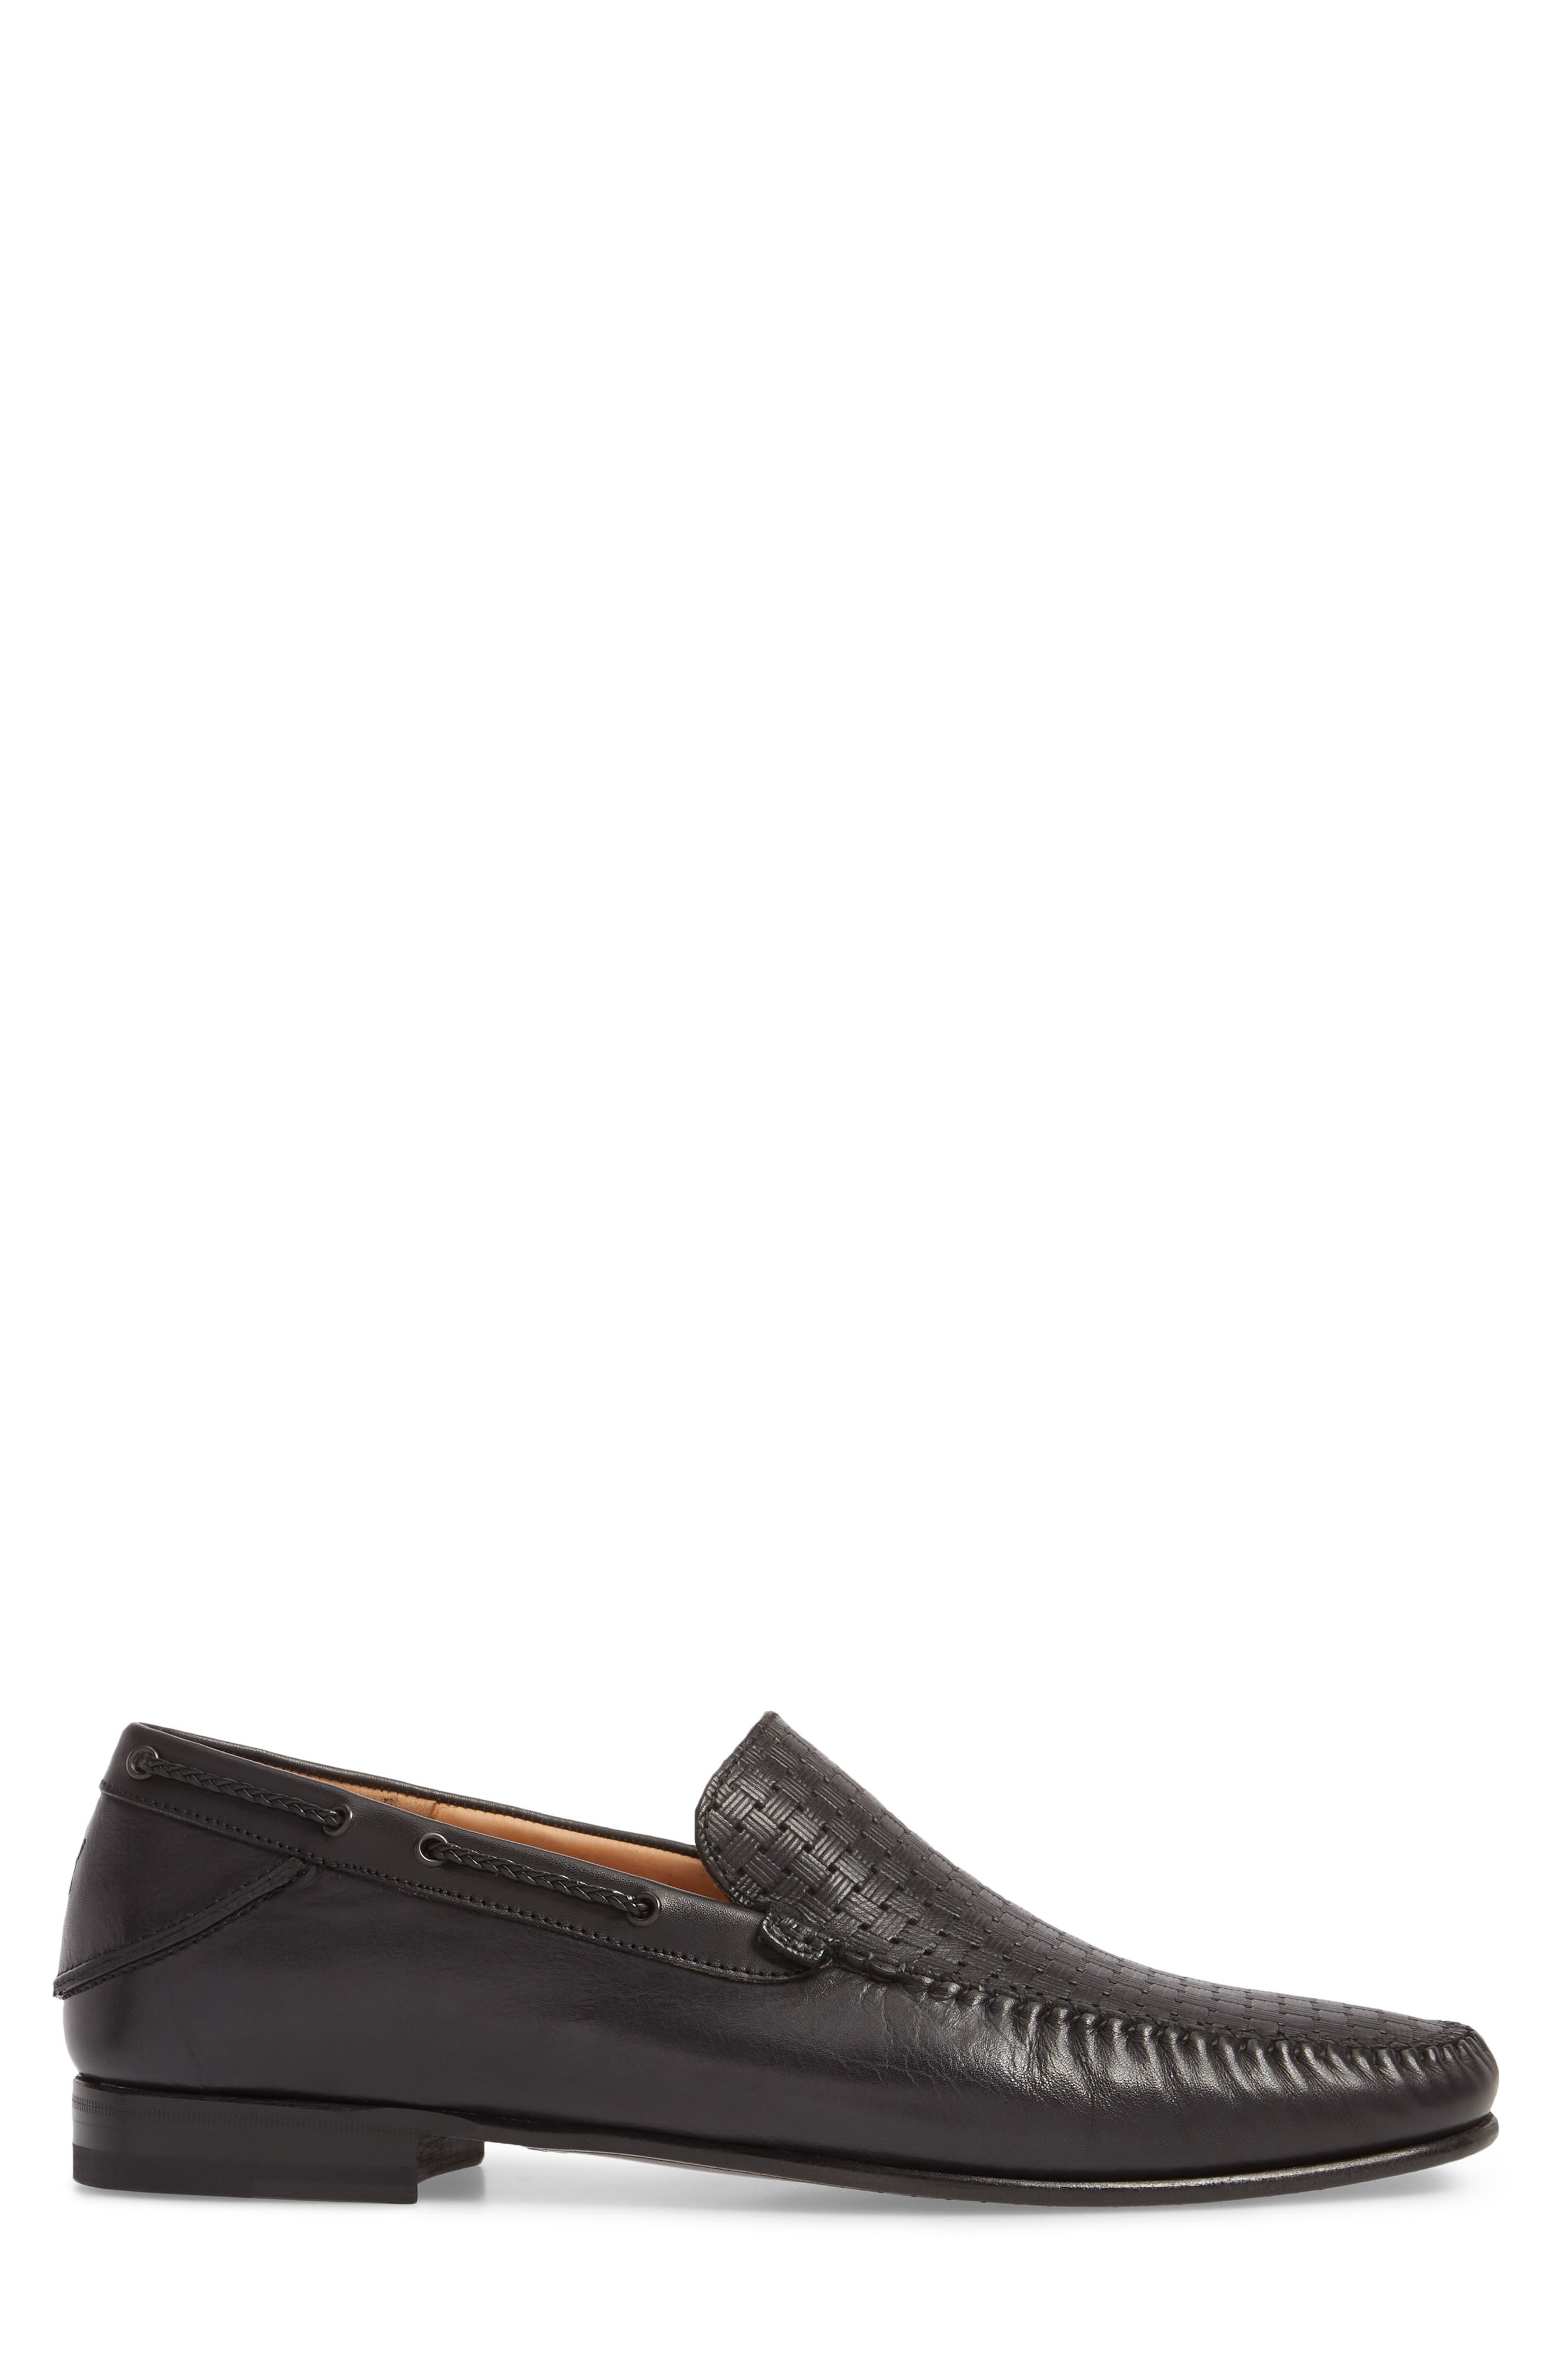 Jano Embossed Moc-Toe Loafer,                             Alternate thumbnail 3, color,                             BLACK LEATHER